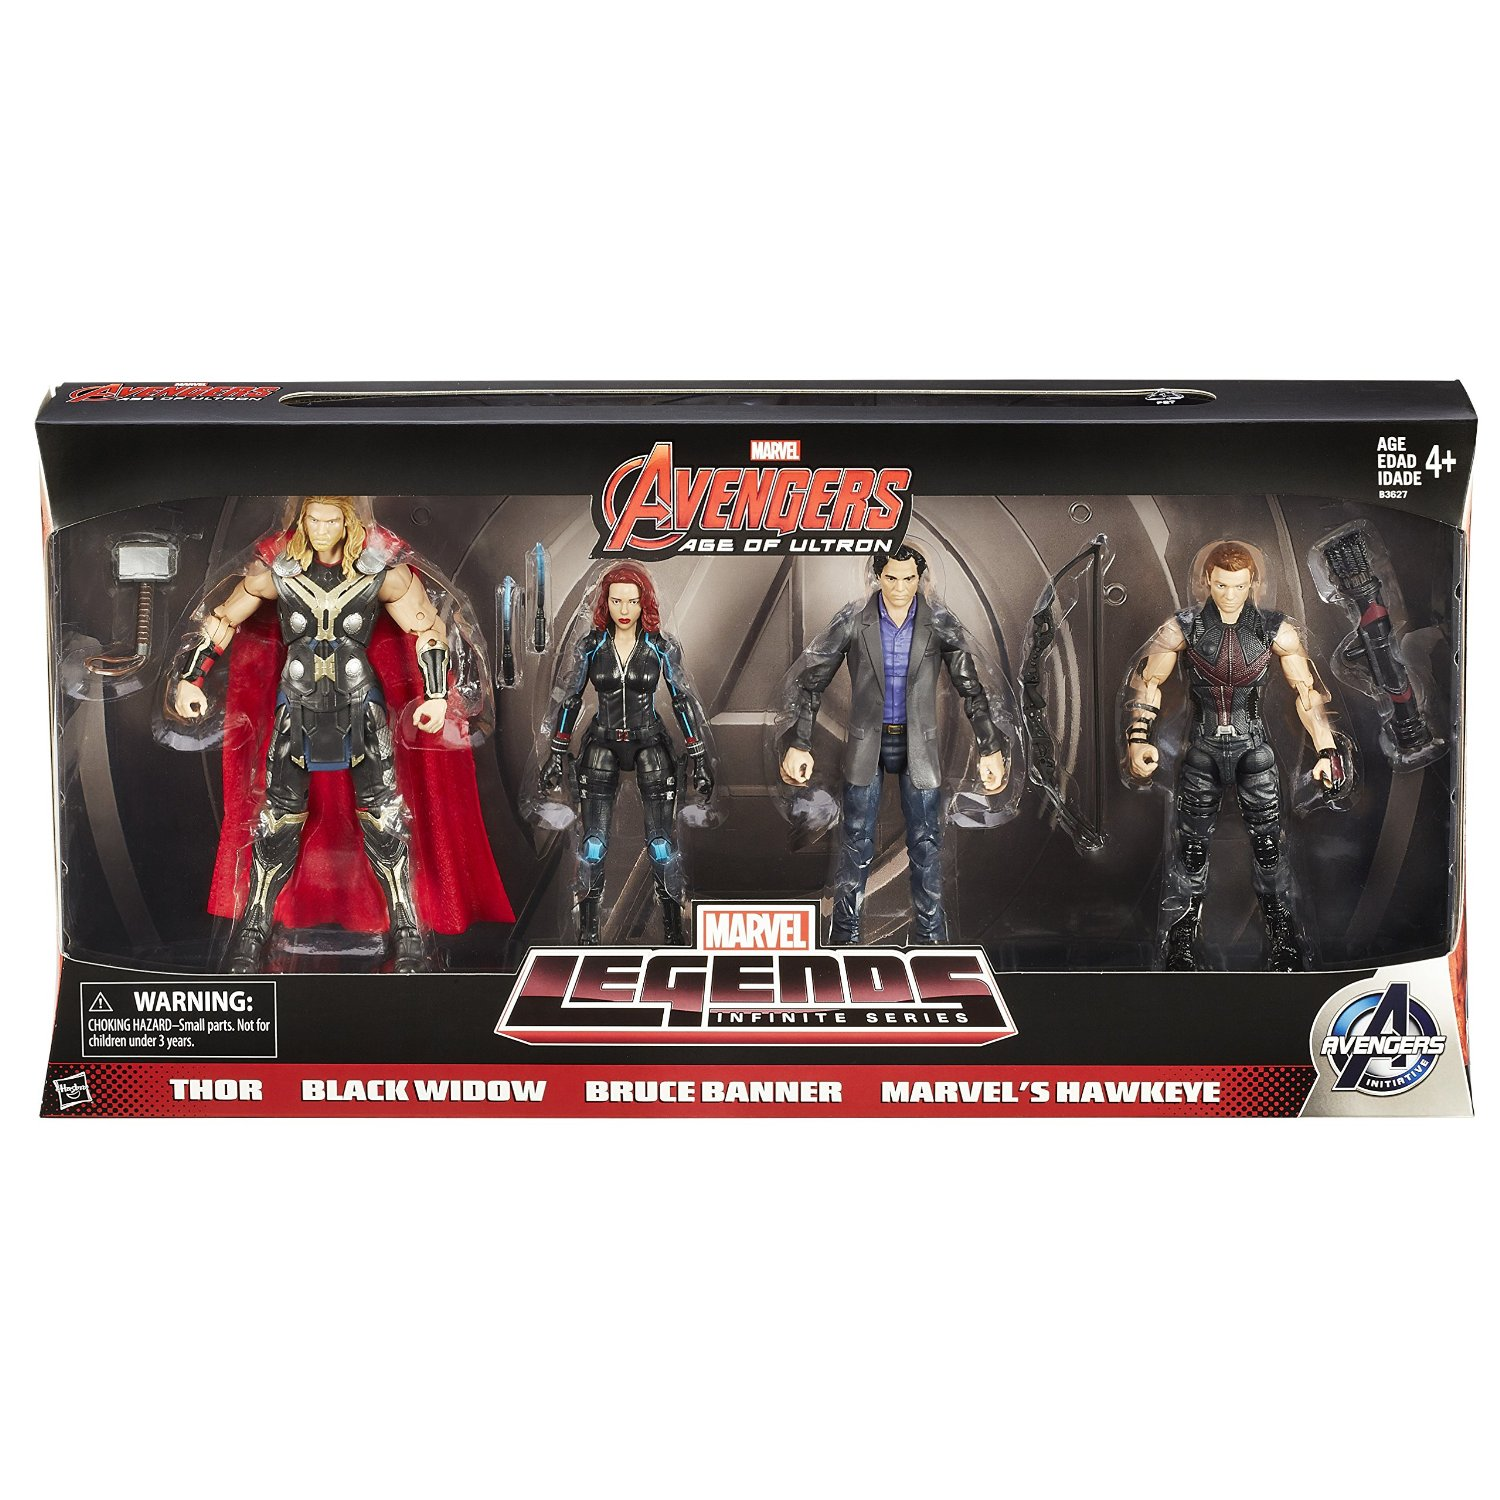 Hasbro Amazon Exclusive Marvel Legends Avengers: Age Of Ultron 4 Pack Listing